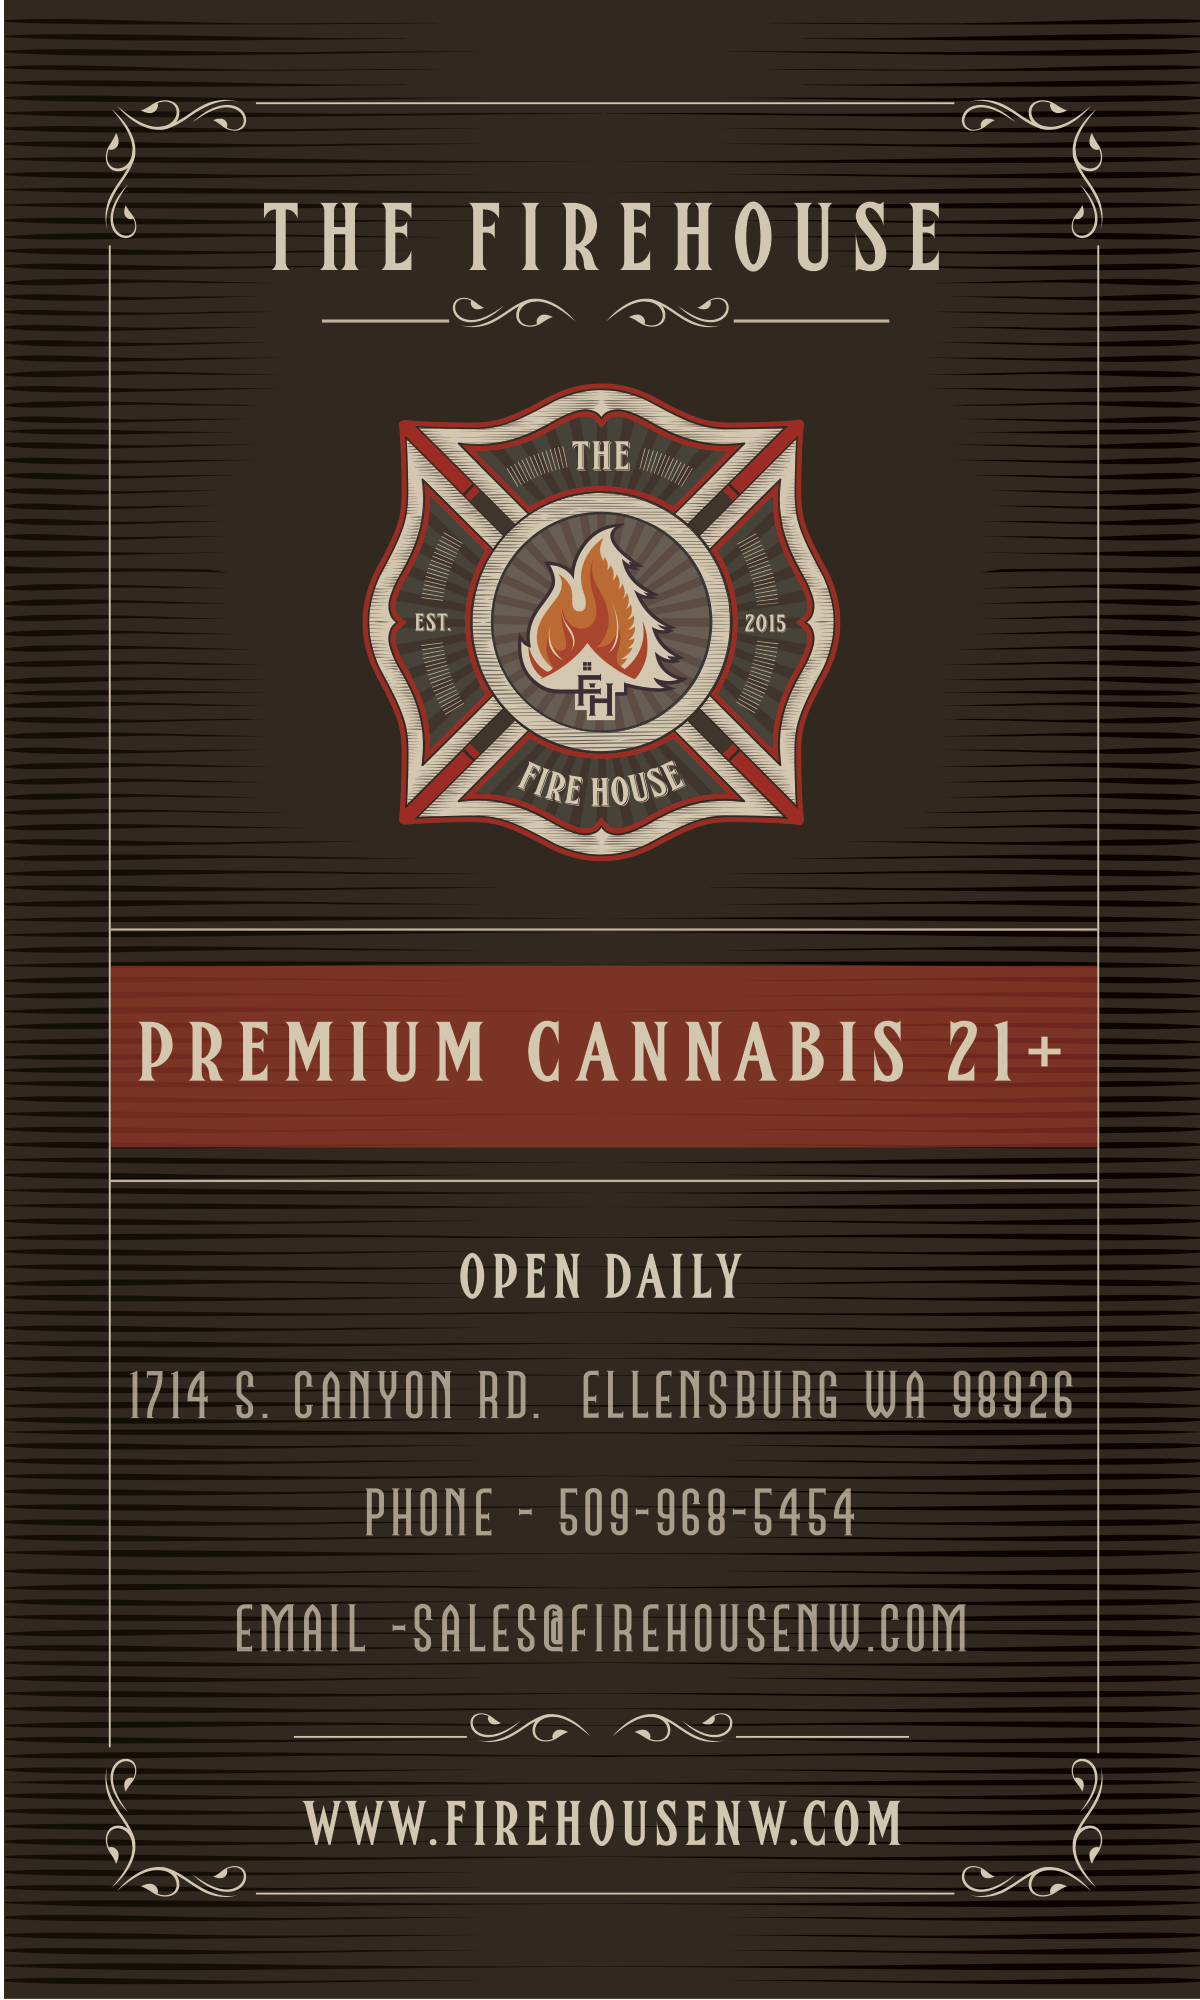 """Advertisement card for """"THE FIREHOUSE"""""""